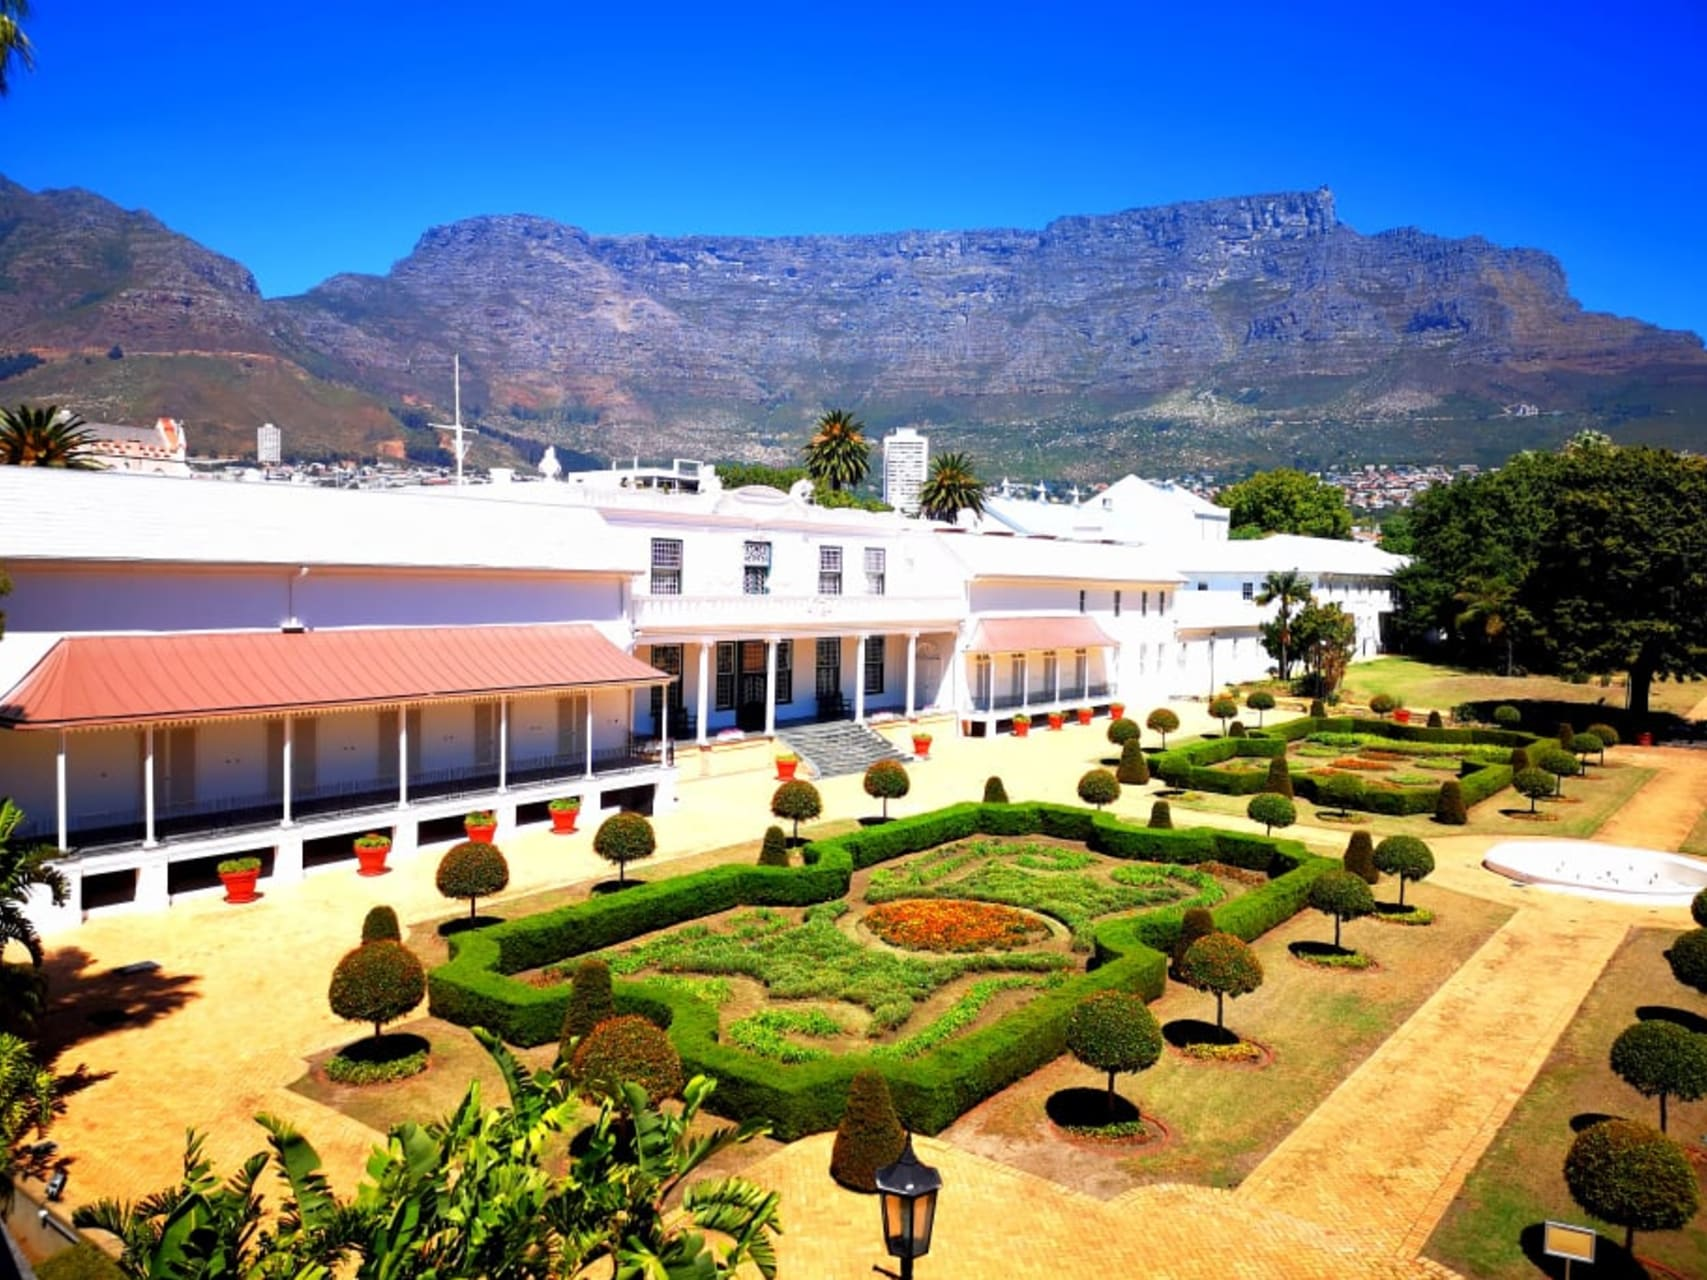 Cape Town - Company Gardens: the oldest park in South Africa